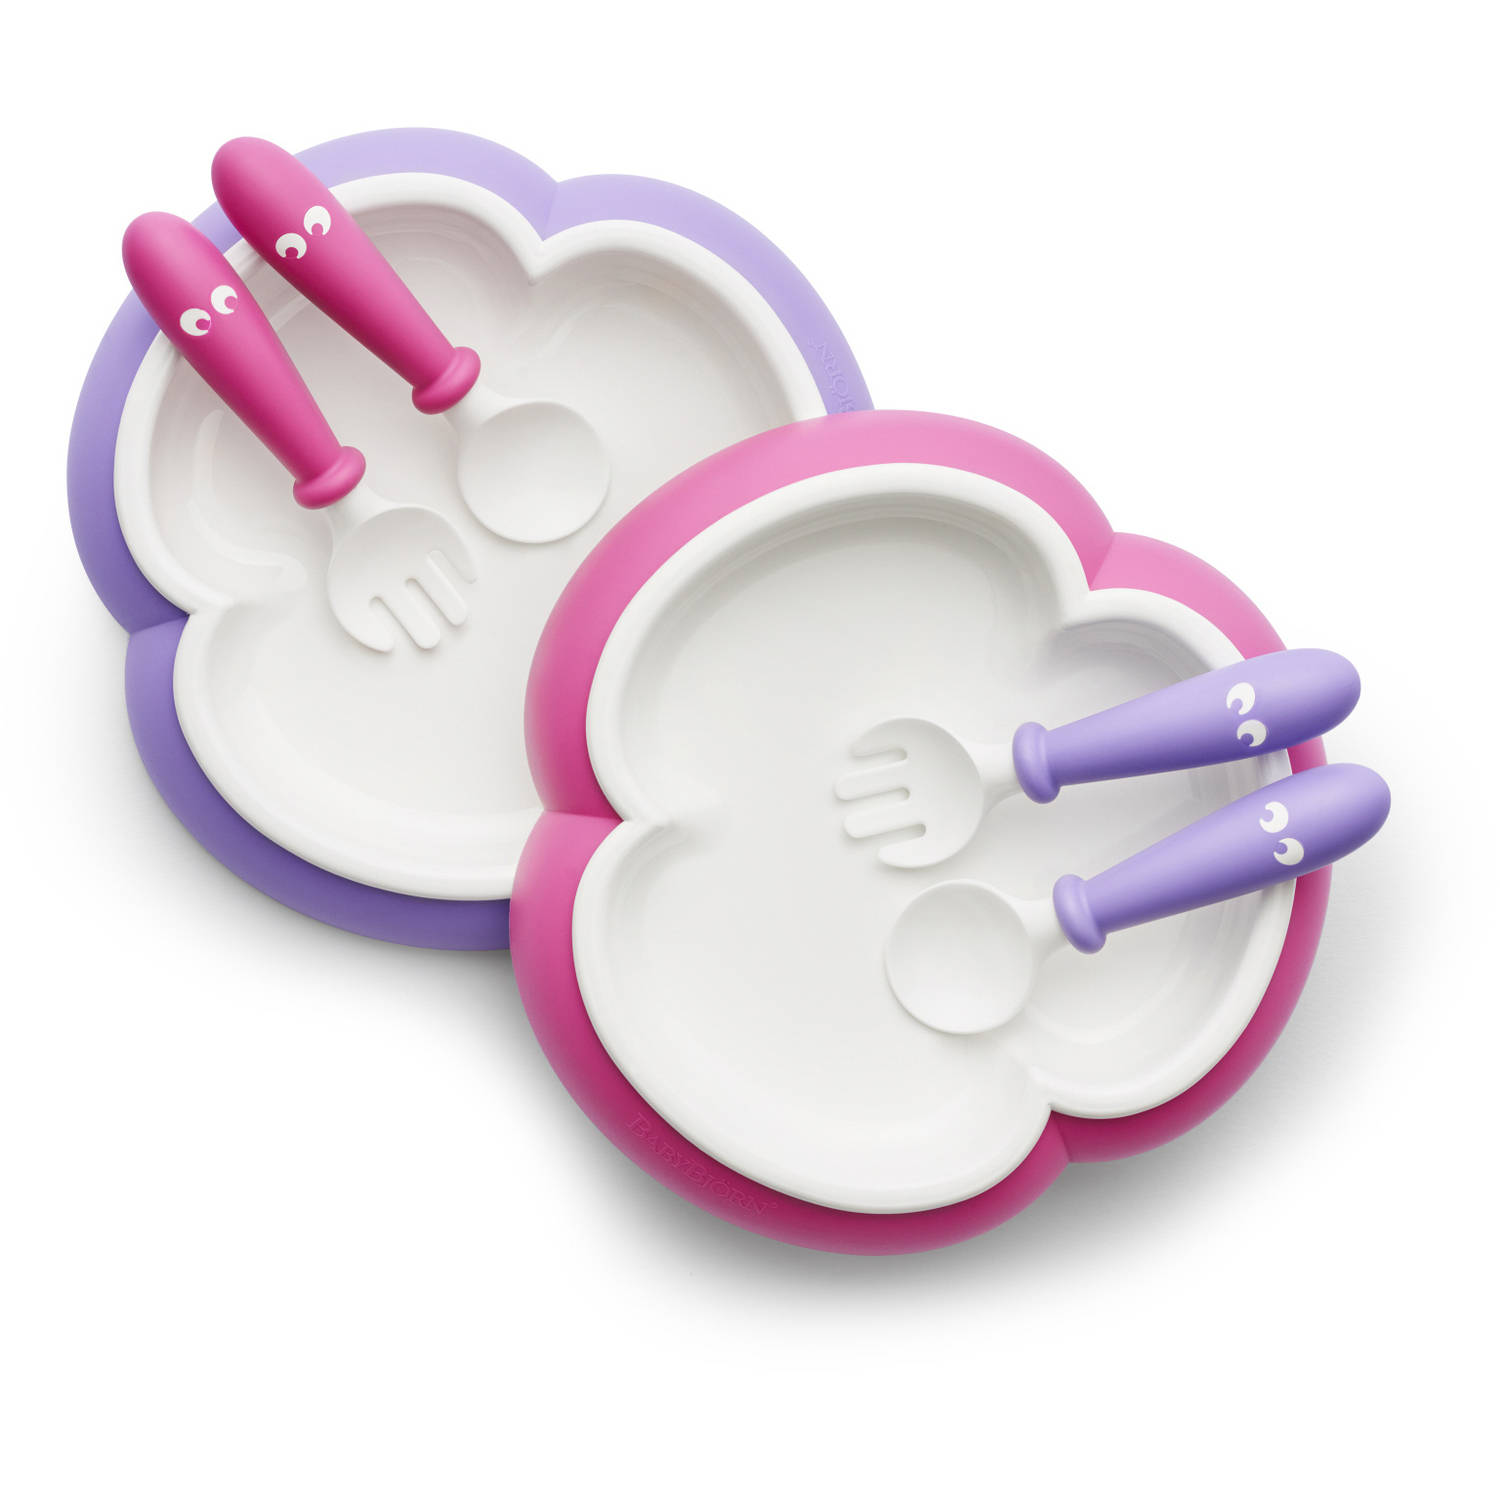 BabyBjorn Baby Plate, Spoon and Fork, 2pk by BabyBj%C3%B6rn